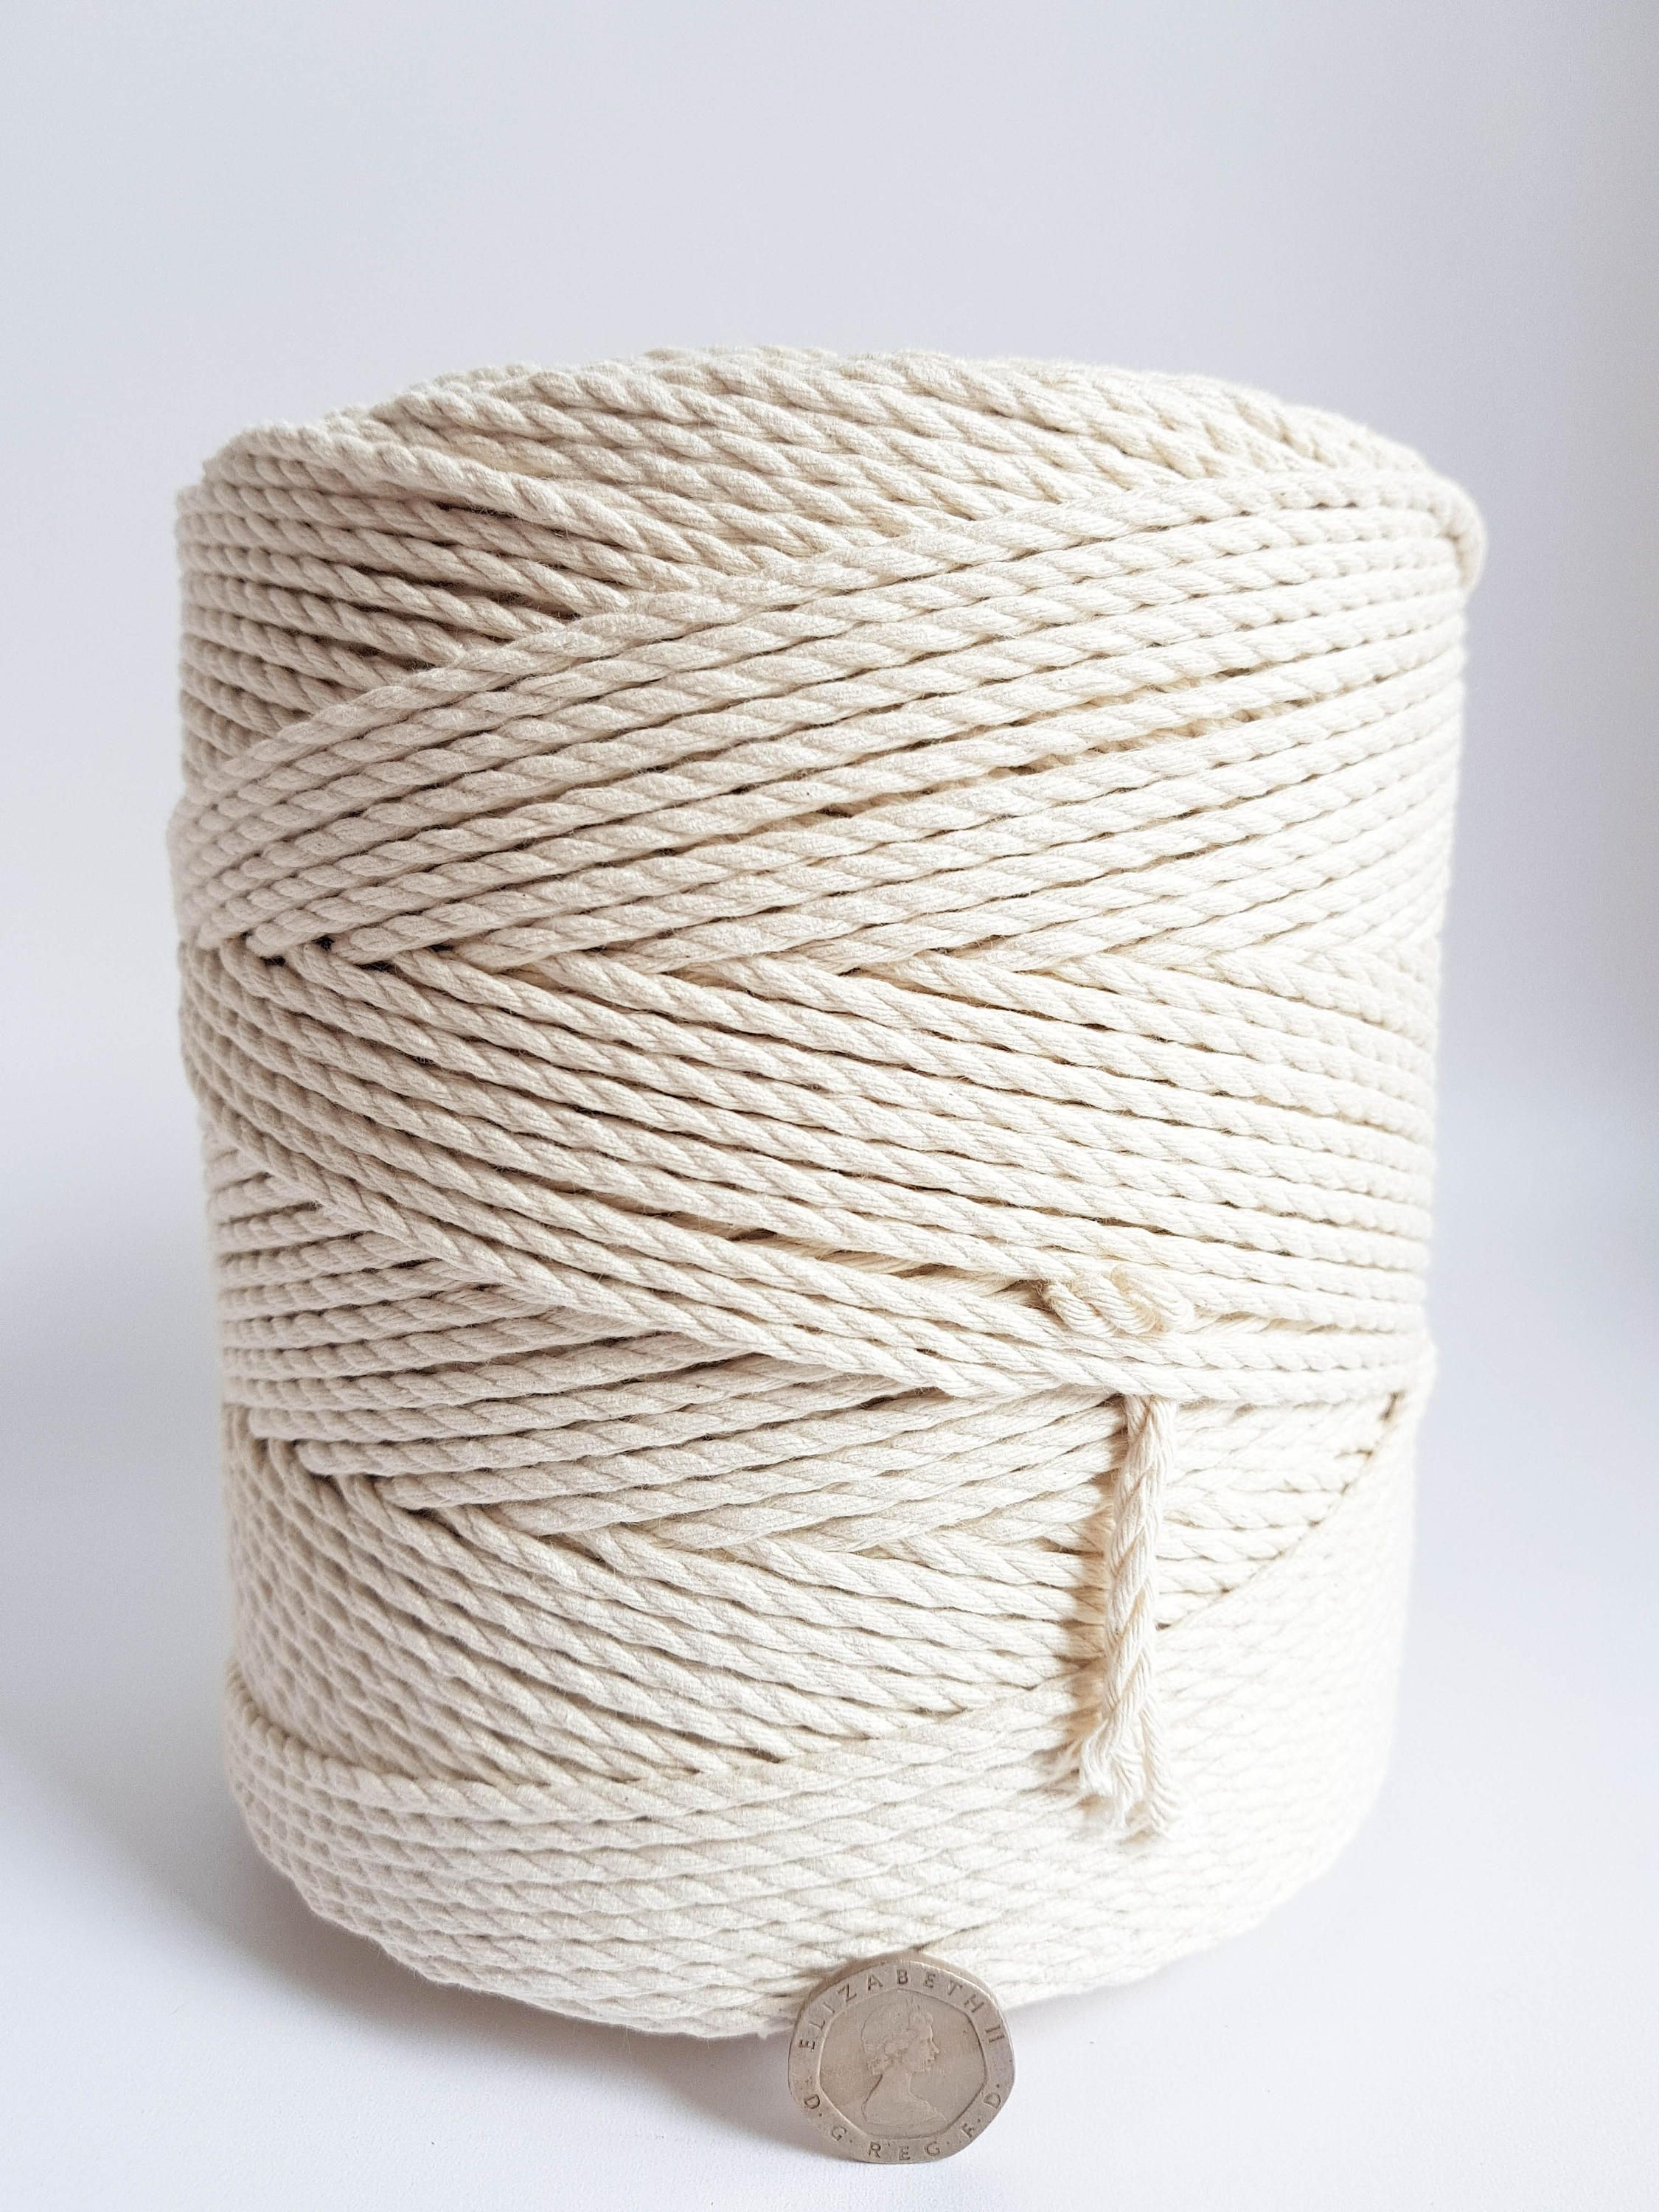 Pin On Cord And Rope For Macrame Projects